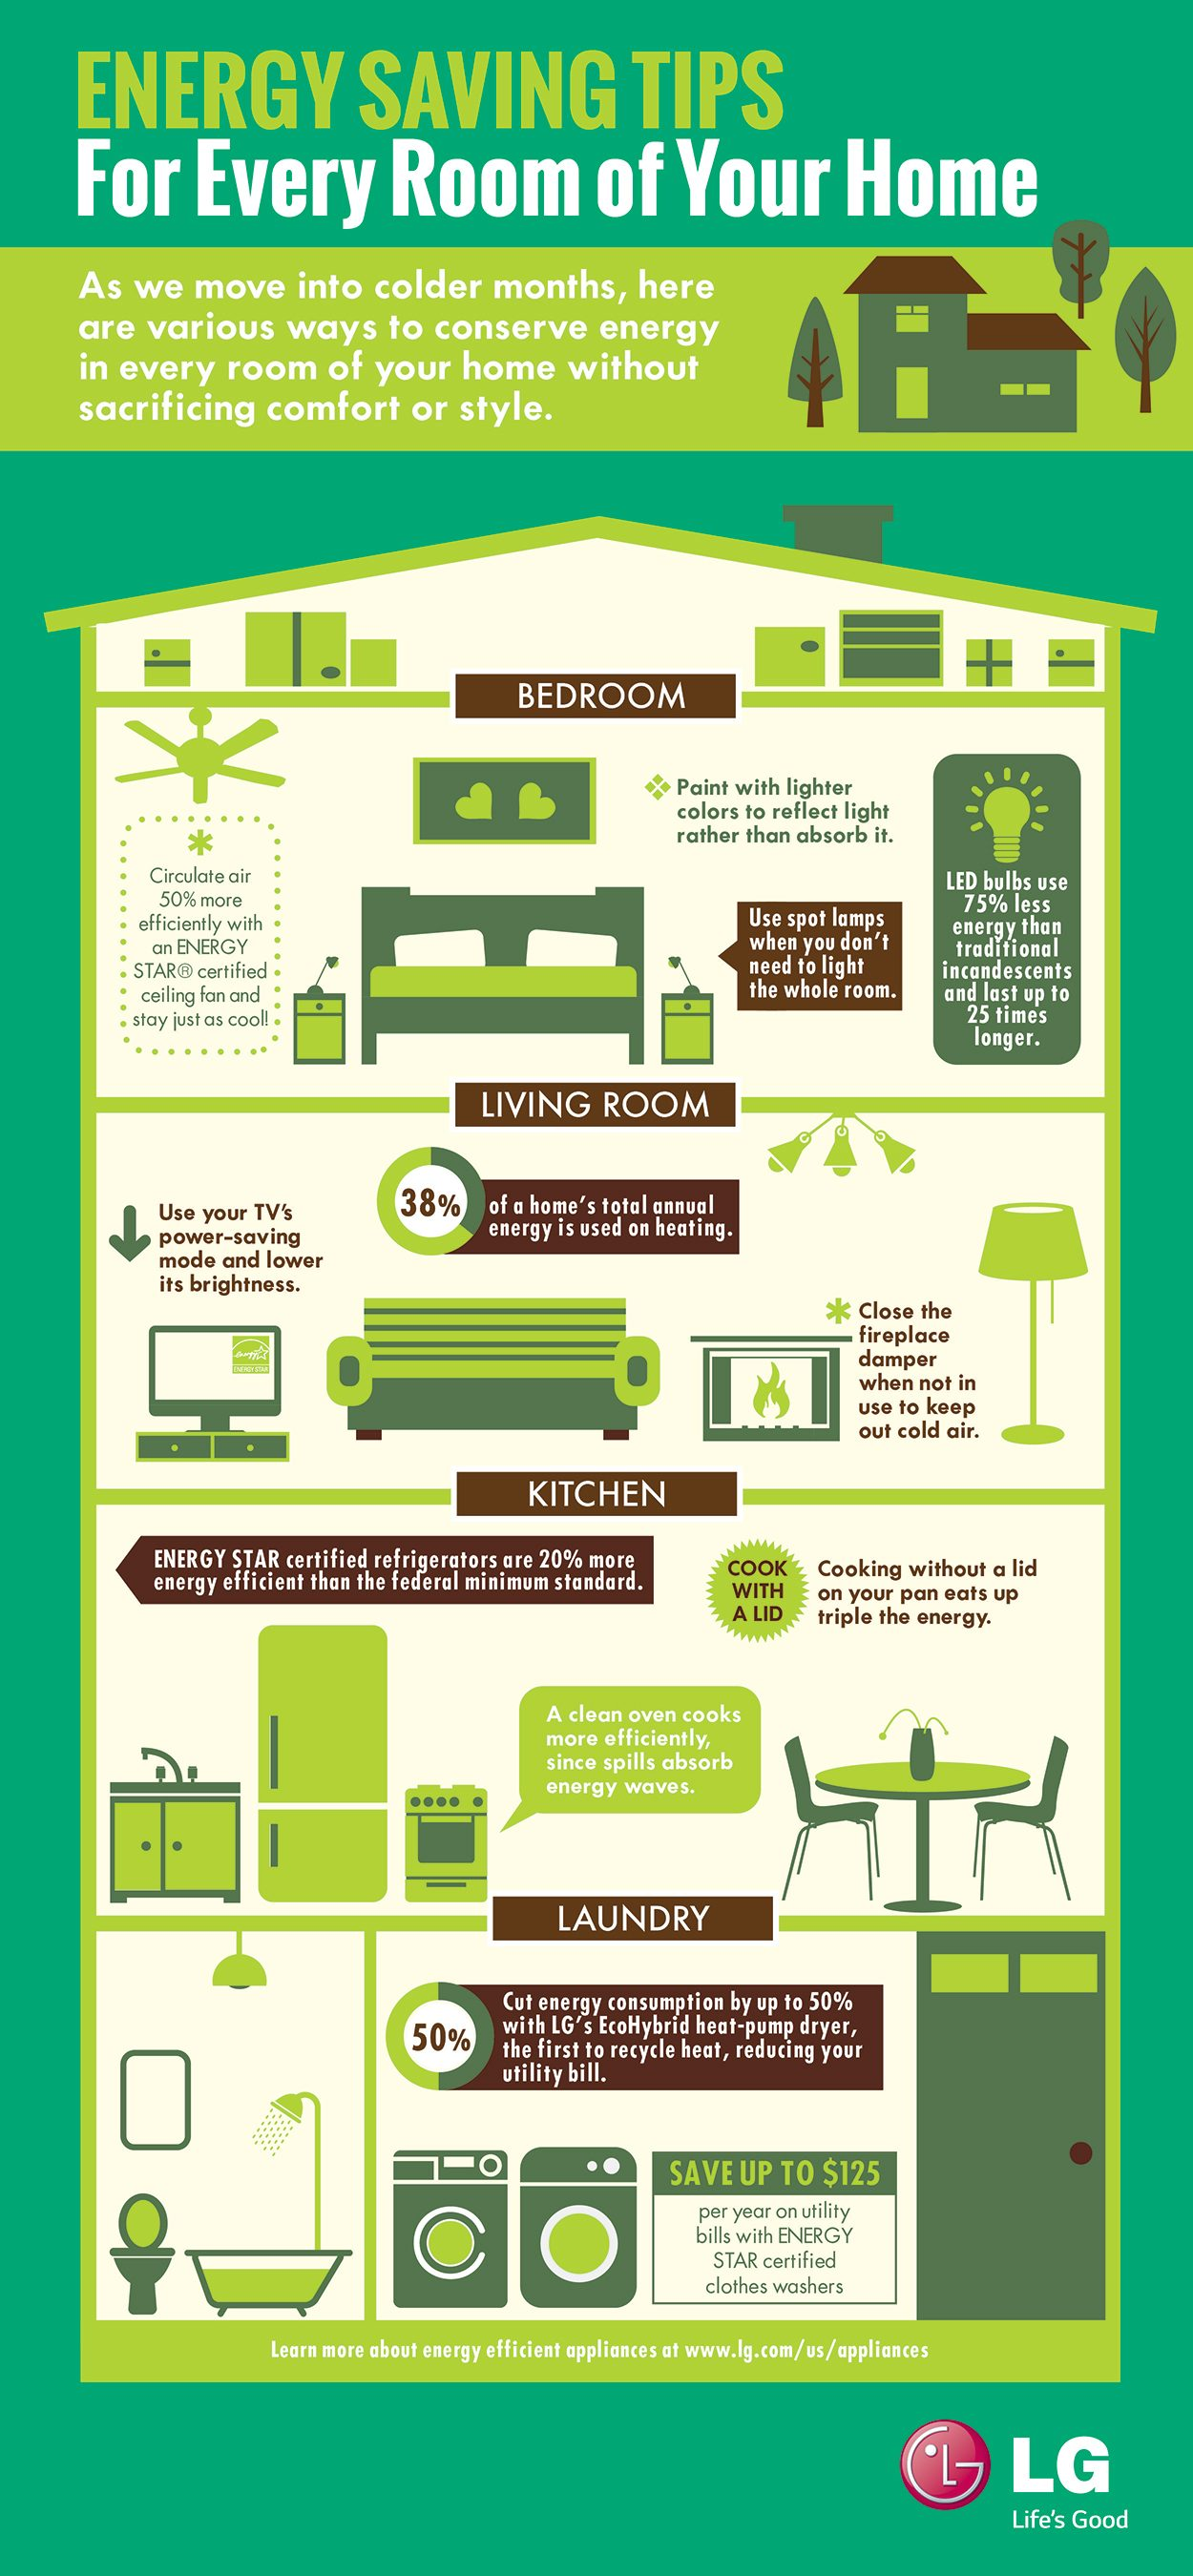 LG Energy Saving Tips Infographic by DreamBig Creative Minneapolis, MN